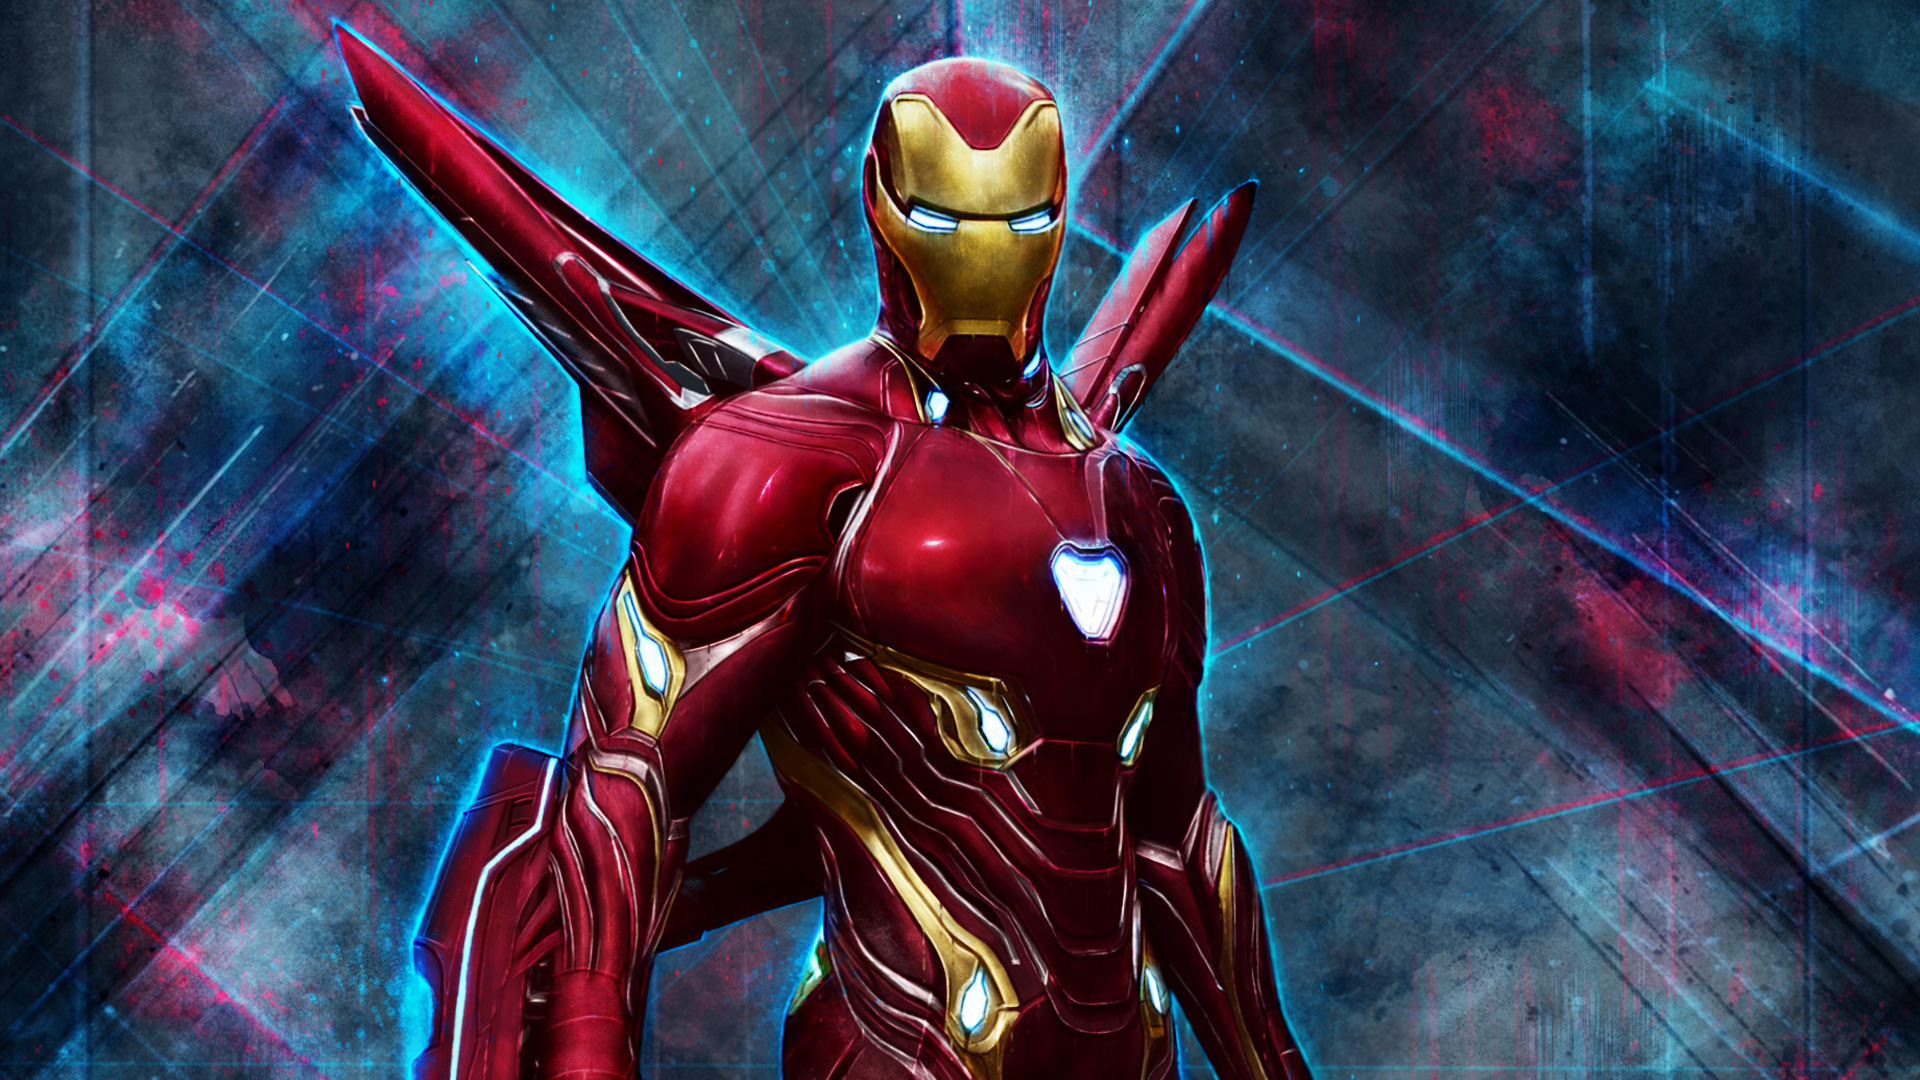 Iron Man Wallpapers Full Hd Desktop Background: 3840x2400 Iron Man Bleeding Edge Armor 4k HD 4k Wallpapers